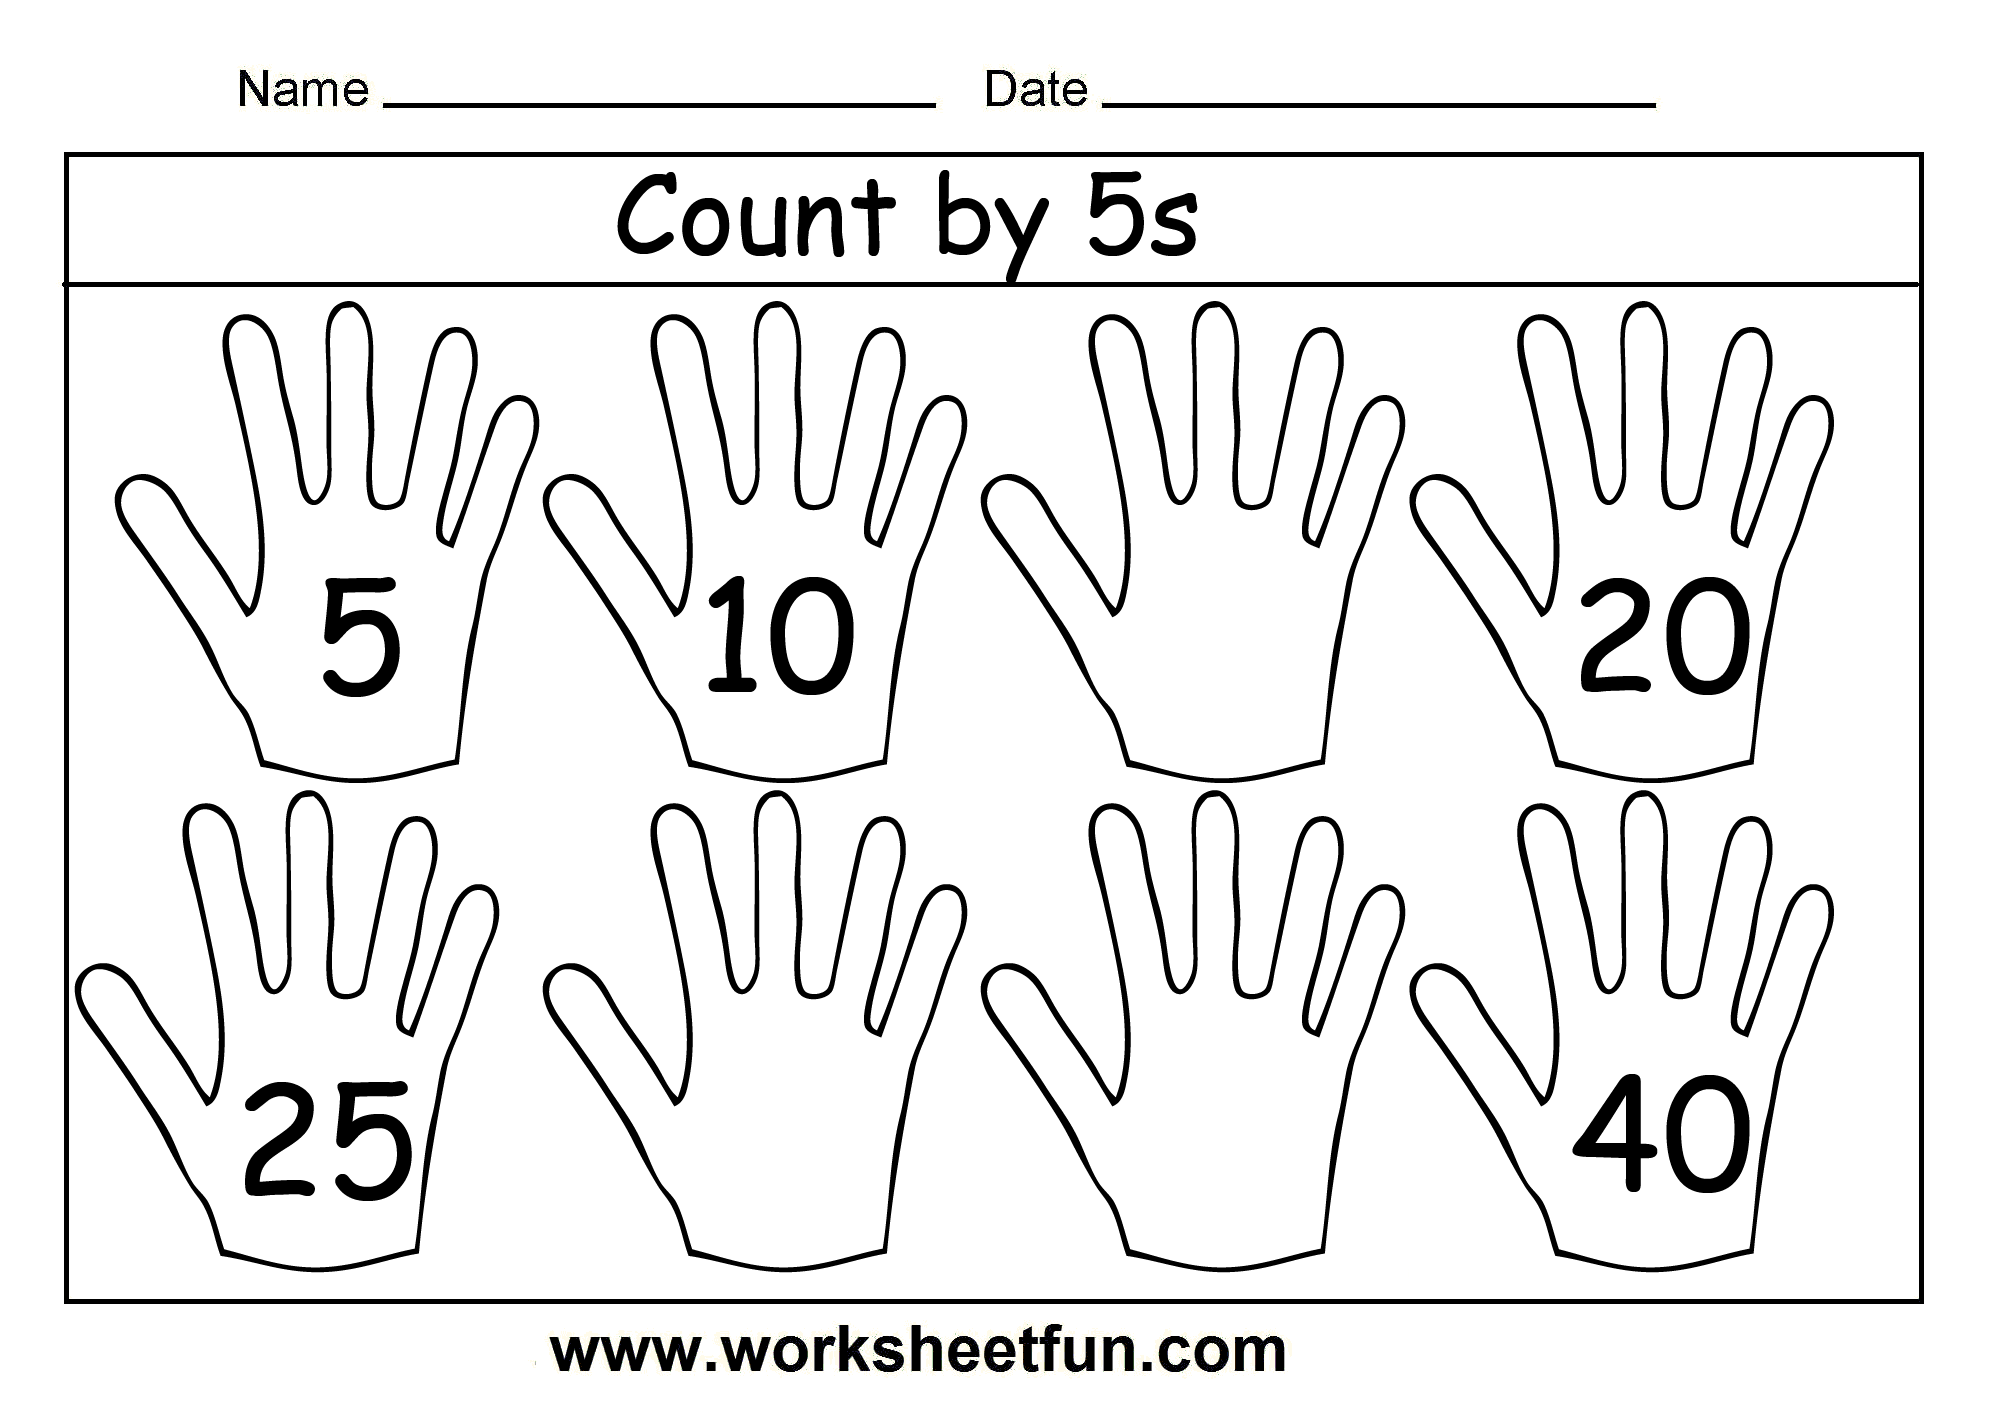 Count By 5s 3 Worksheets Free Printable Worksheets